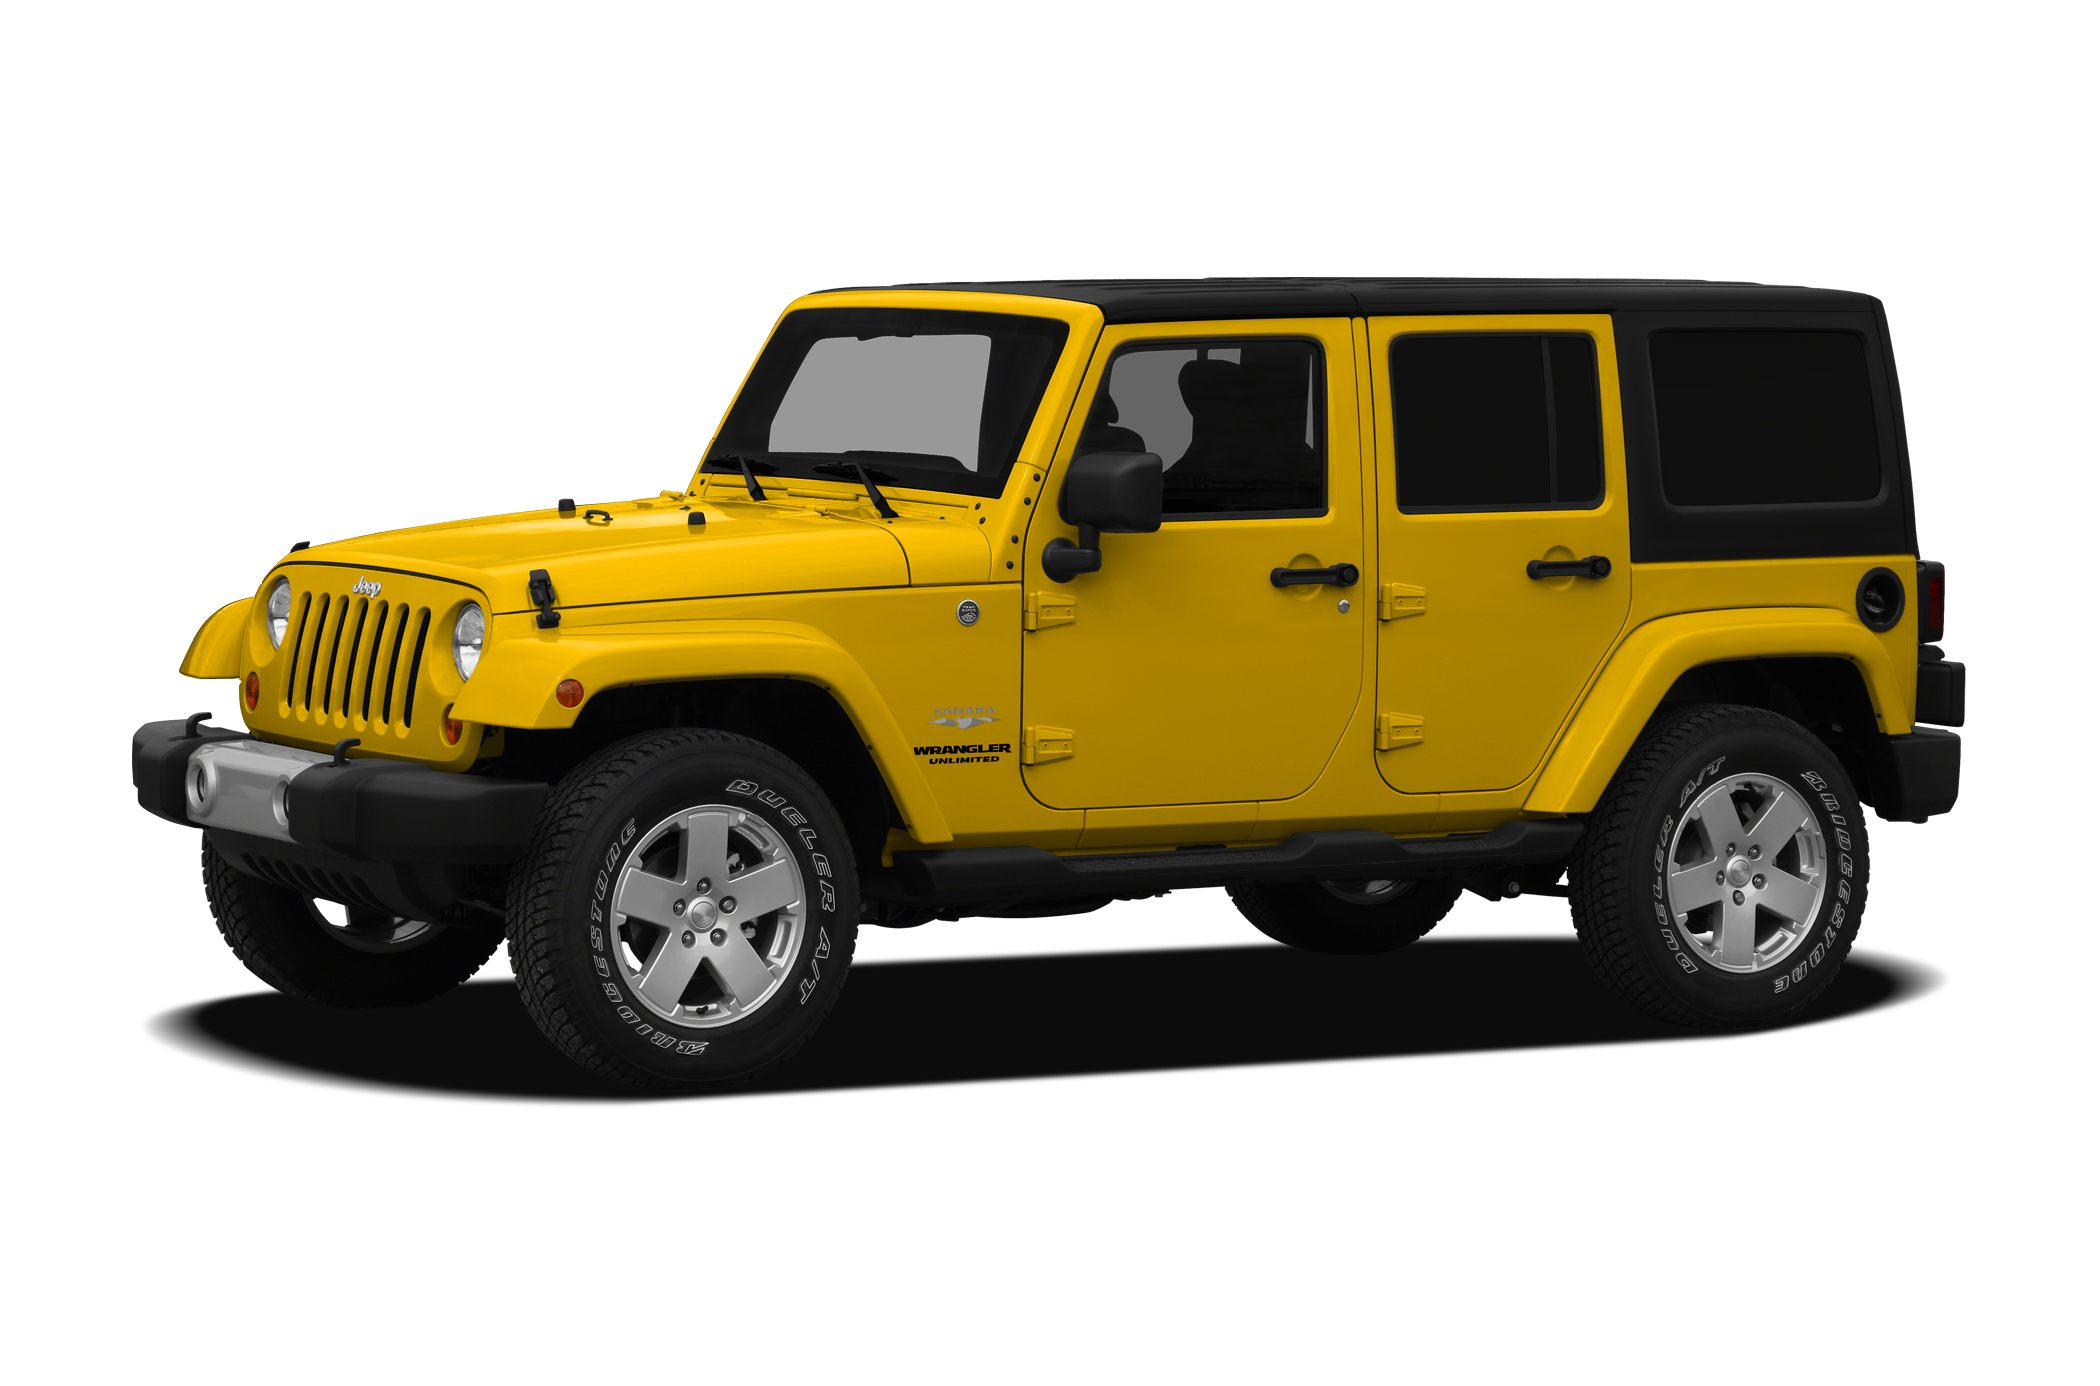 2011 Jeep Wrangler Unlimited Sahara The THUNDER has come to Bartow Florida 2011 Jeep Wrangler Un